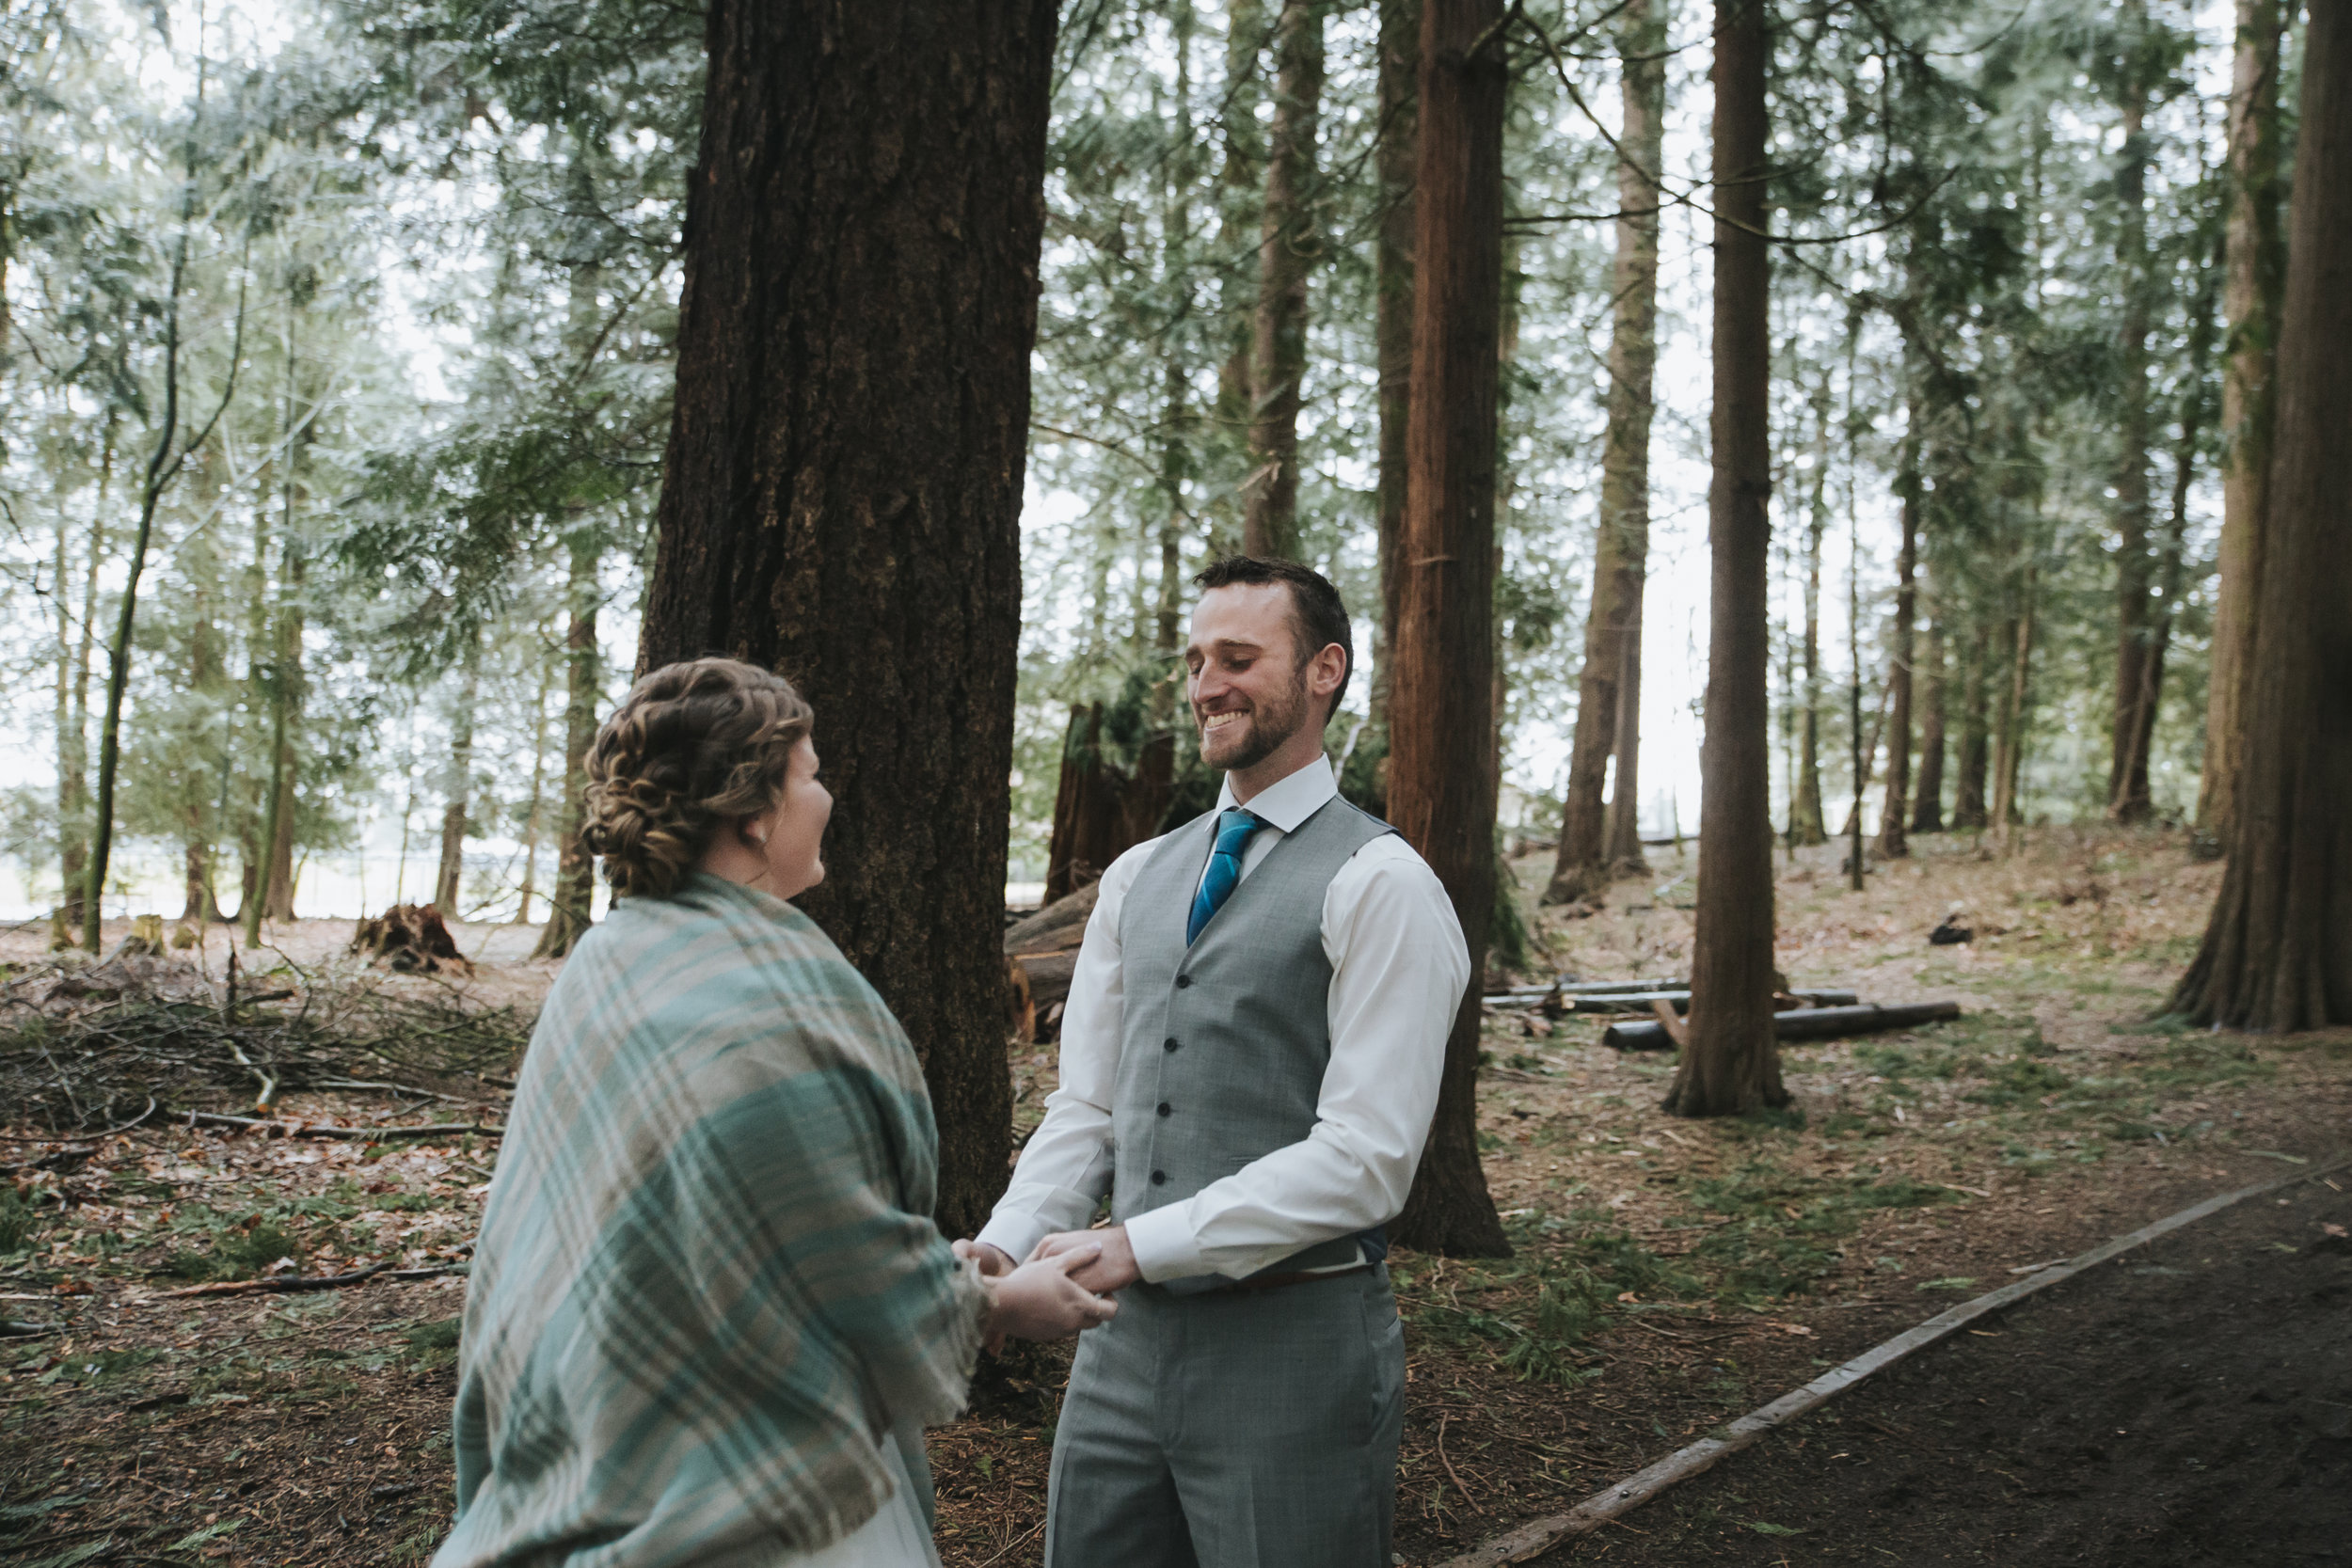 First look    A rainy forest wedding in Lynden Washington, featuring teal blue accents, rustic details, umbrellas and a large bridal party.#rain #wedding #lynden  #washington #umbrella #spring #teal #grey #brown #trees #romantic #documentarywedding #unposed #romanticposes #couple #largebridalparty   Photography by Christina Voorhorst of Mimsical Photography. Do not alter, crop, edit or share these images without proper credit or permission. www.mimsicalphotography.com